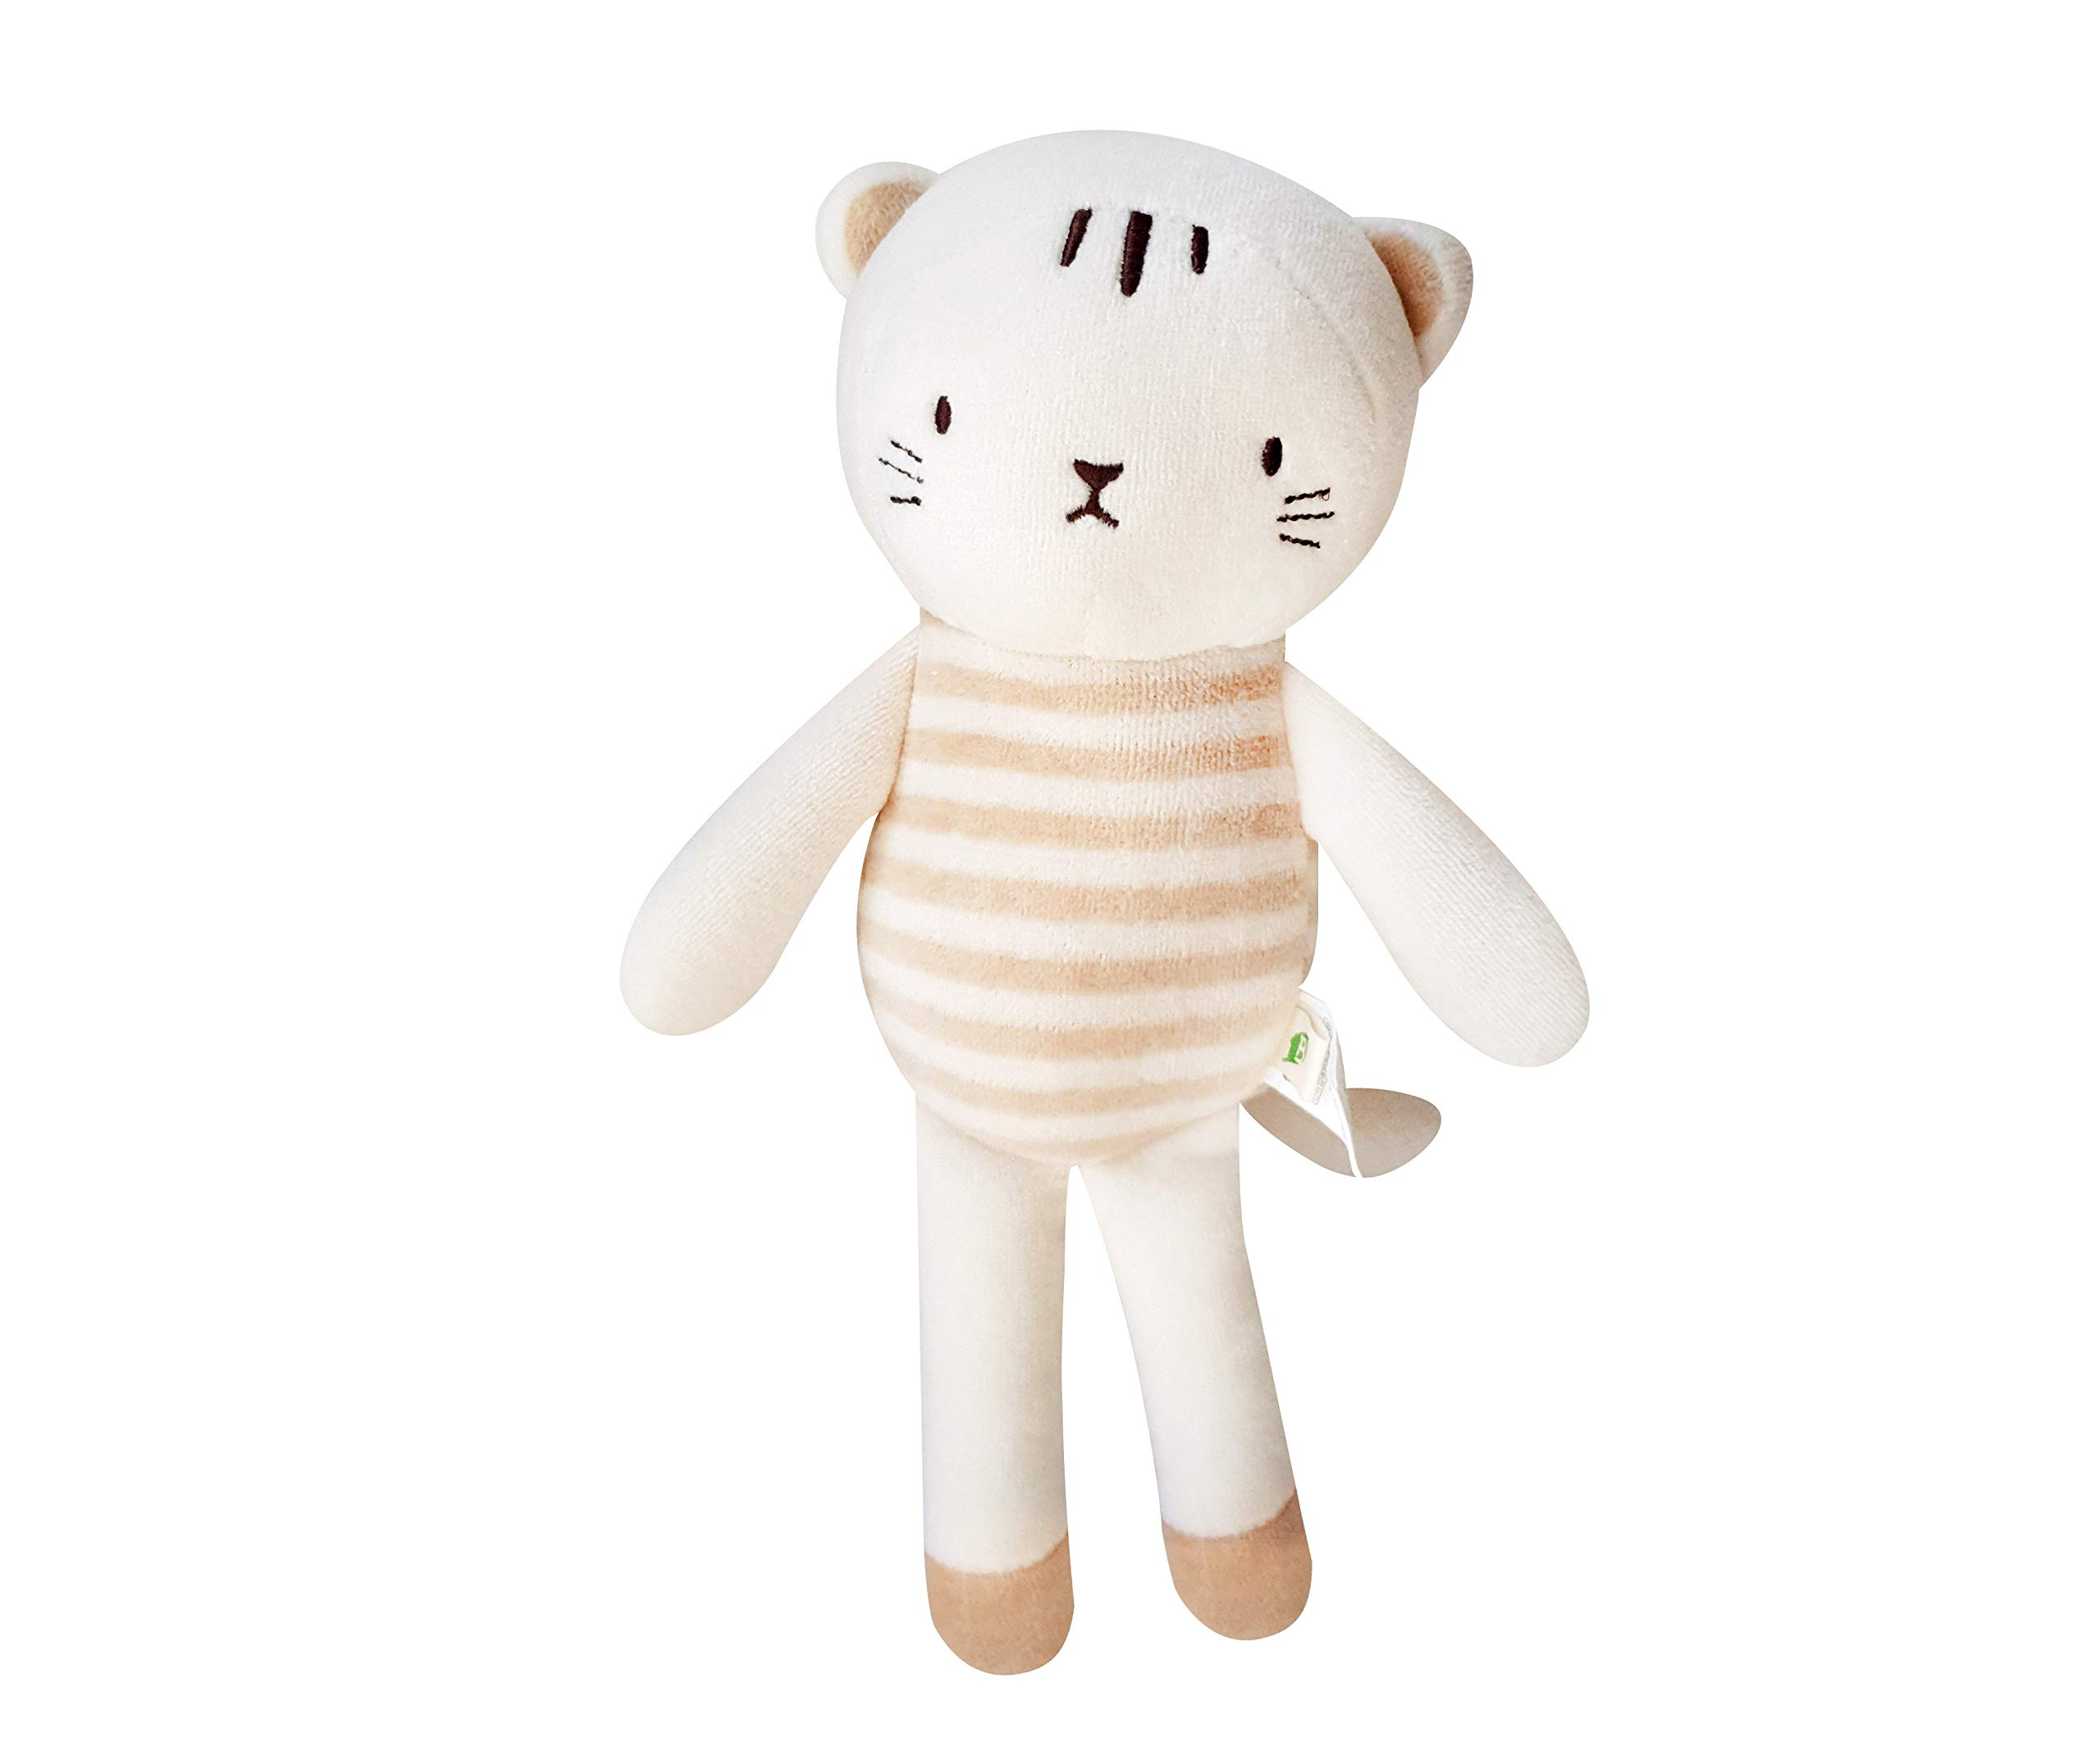 Blessnature] 100% Organic Stuffed Animal, Baby Doll, Tri-Colored Plush Toy (Kitten Lucy)_12in by Blessnature